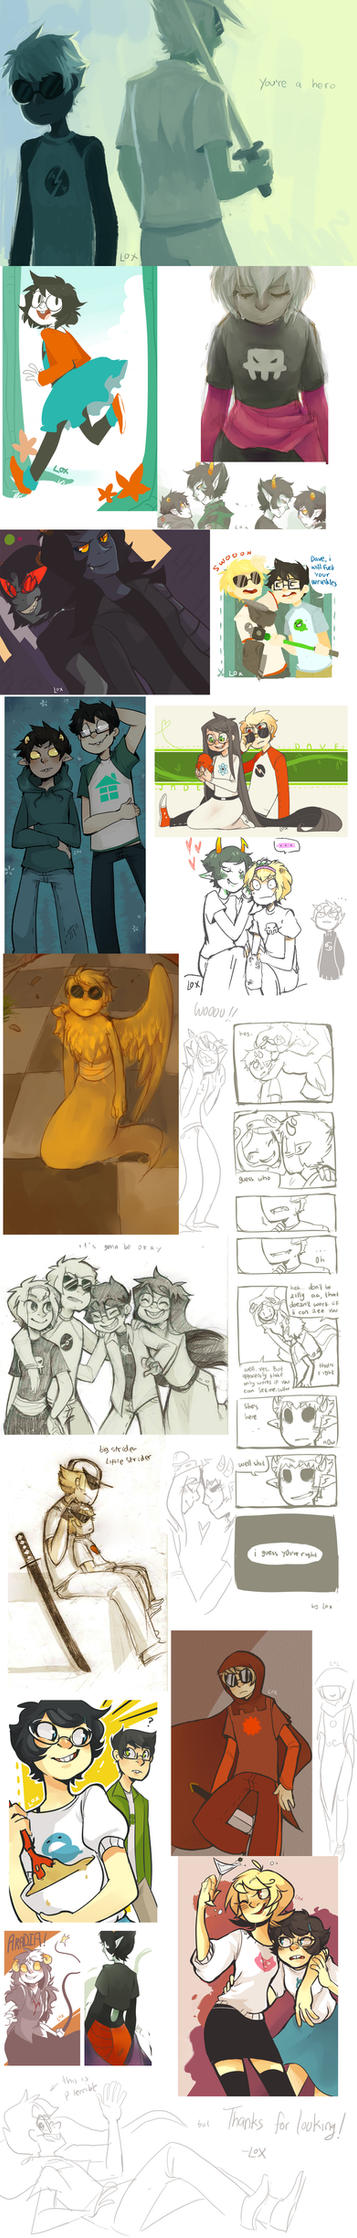 homestuck sketchdump by Rockafiller